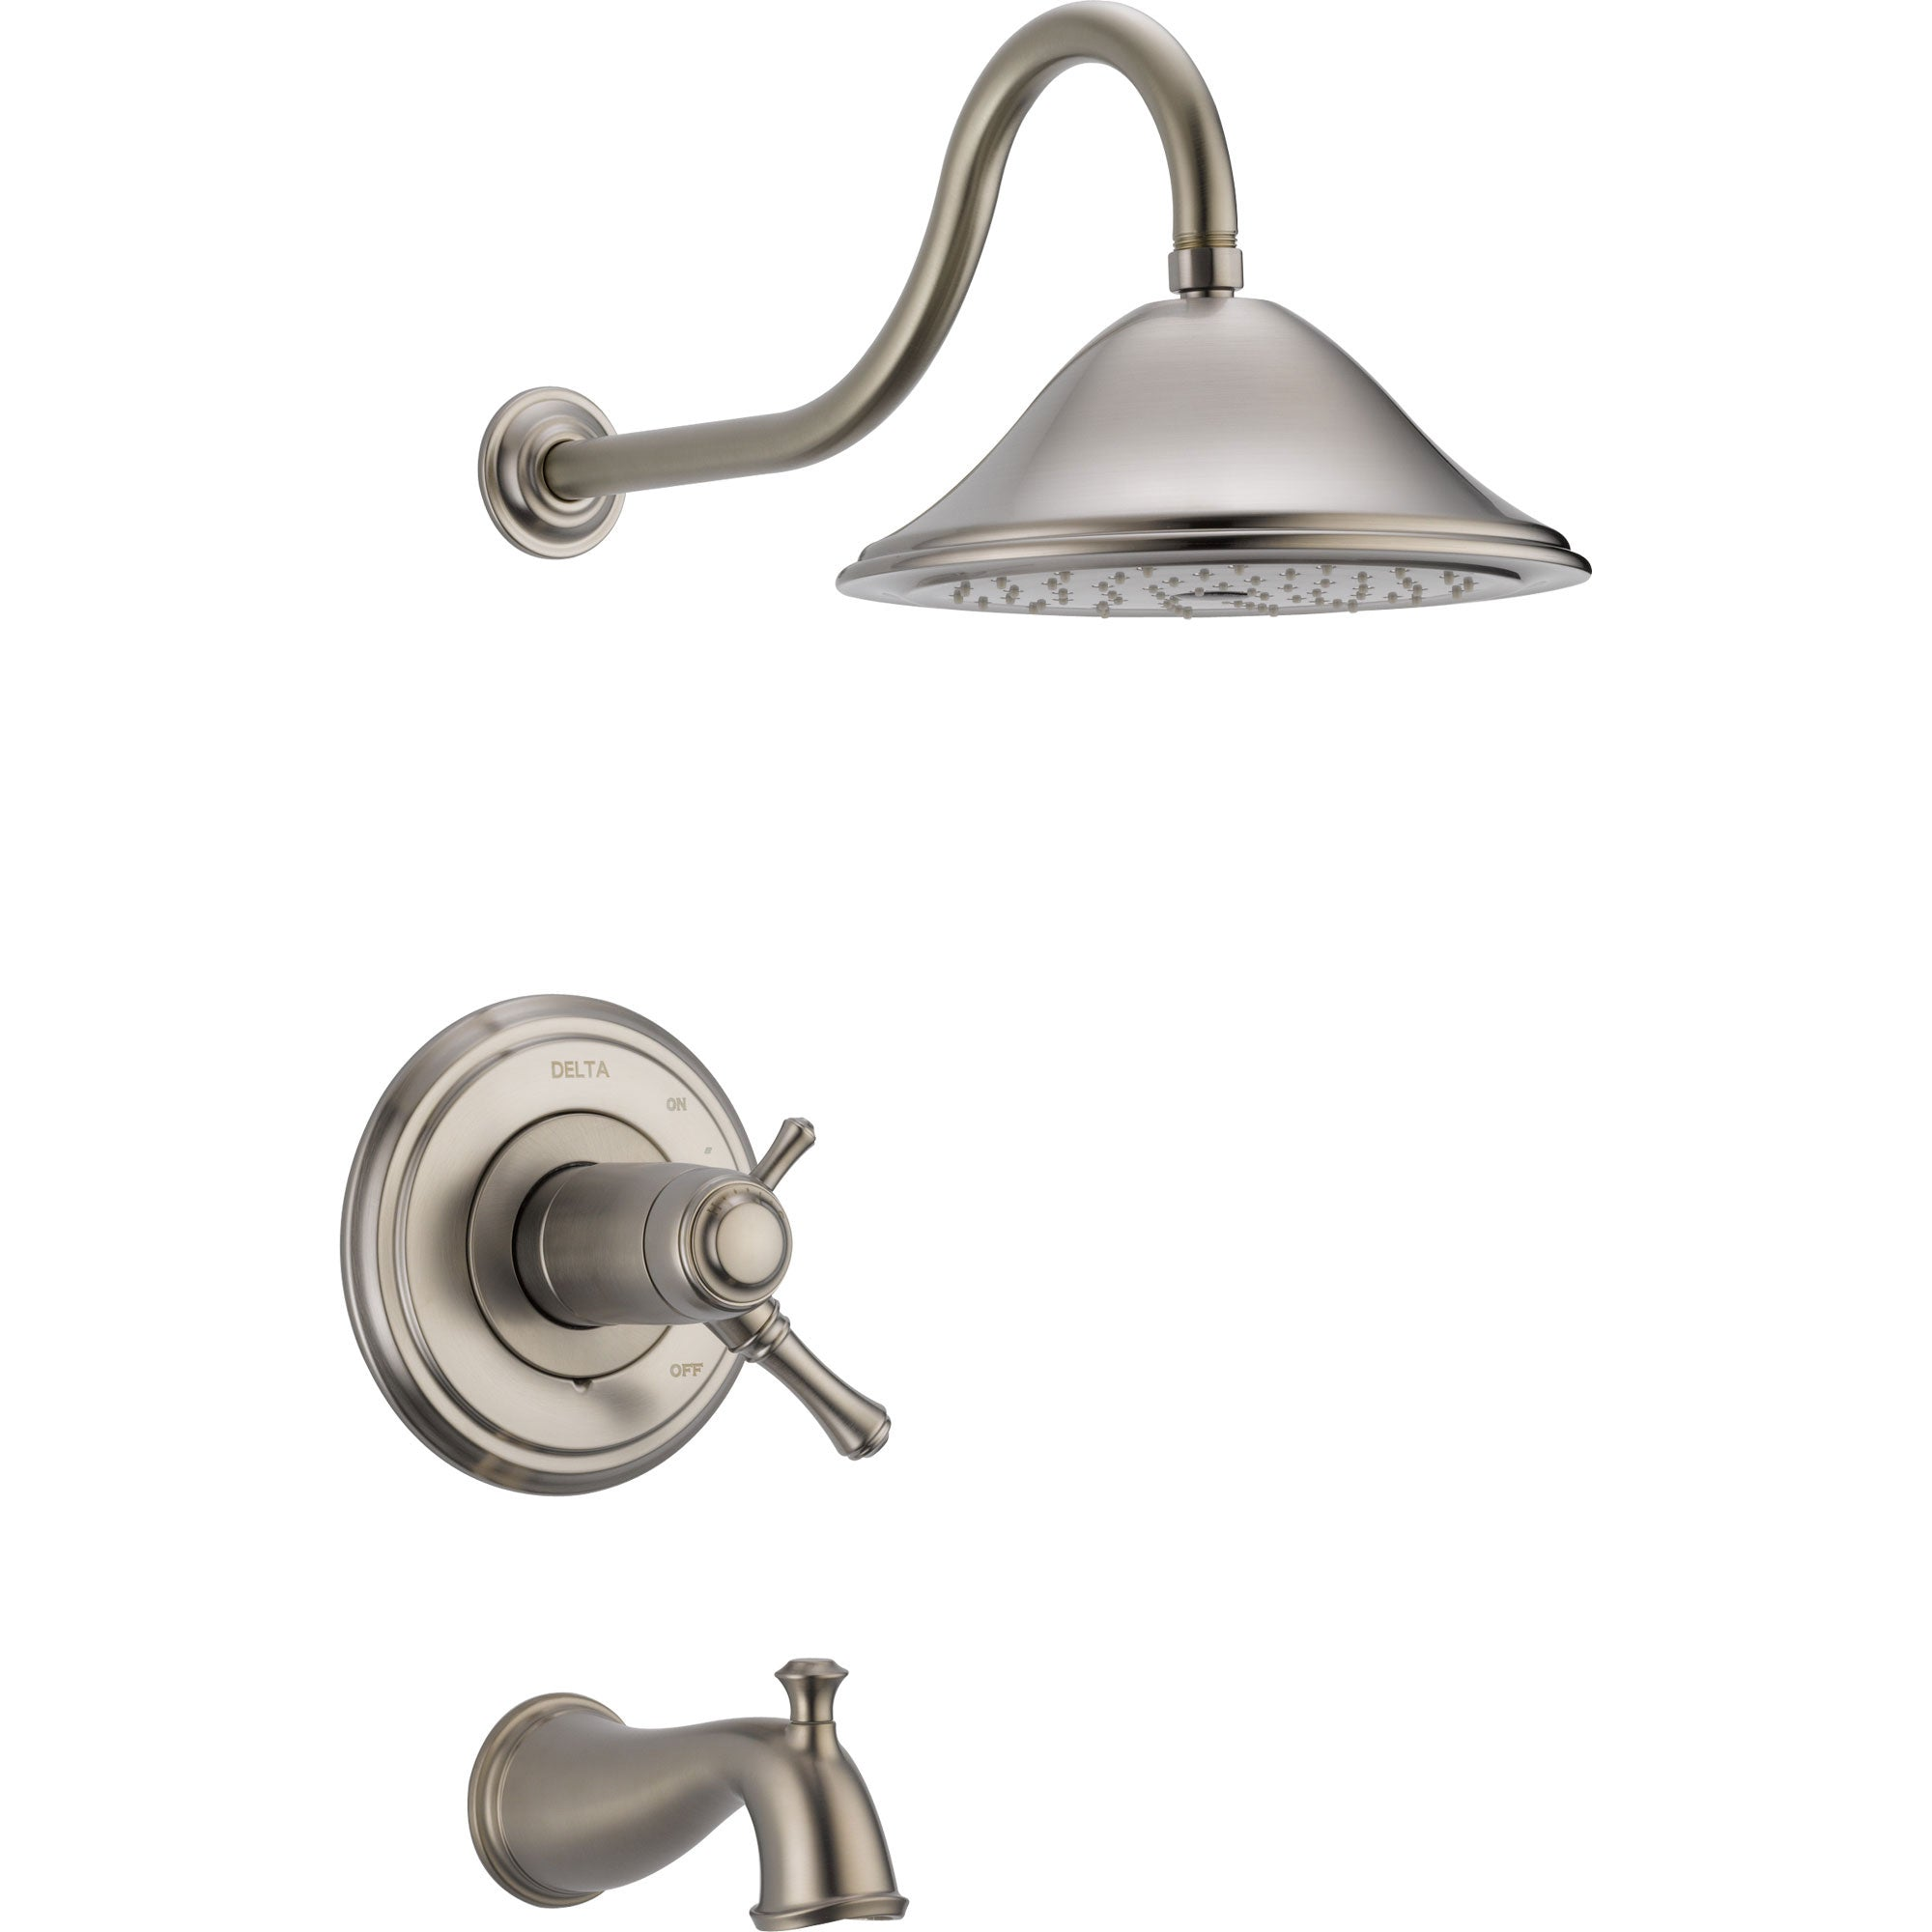 Delta Cassidy Stainless Steel Finish Thermostatic Large Tub/Shower Trim 584230